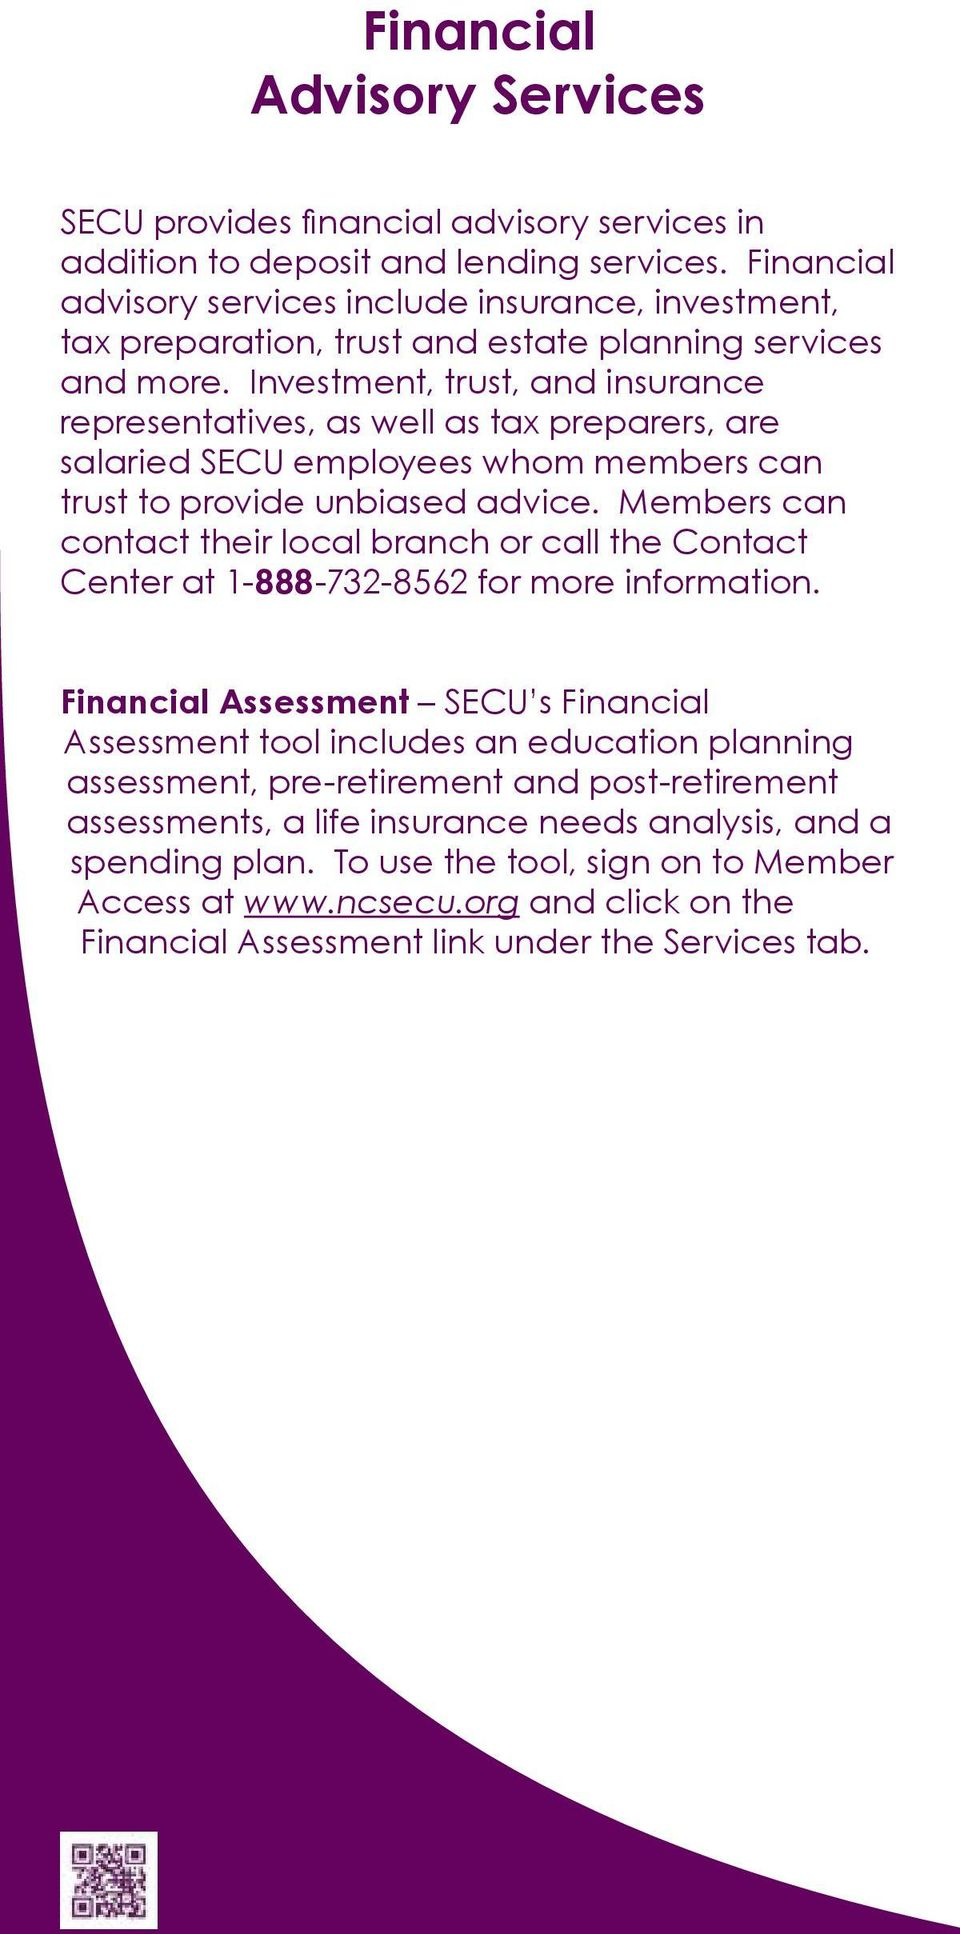 Investment, trust, and insurance representatives, as well as tax preparers, are salaried SECU employees whom members can trust to provide unbiased advice.